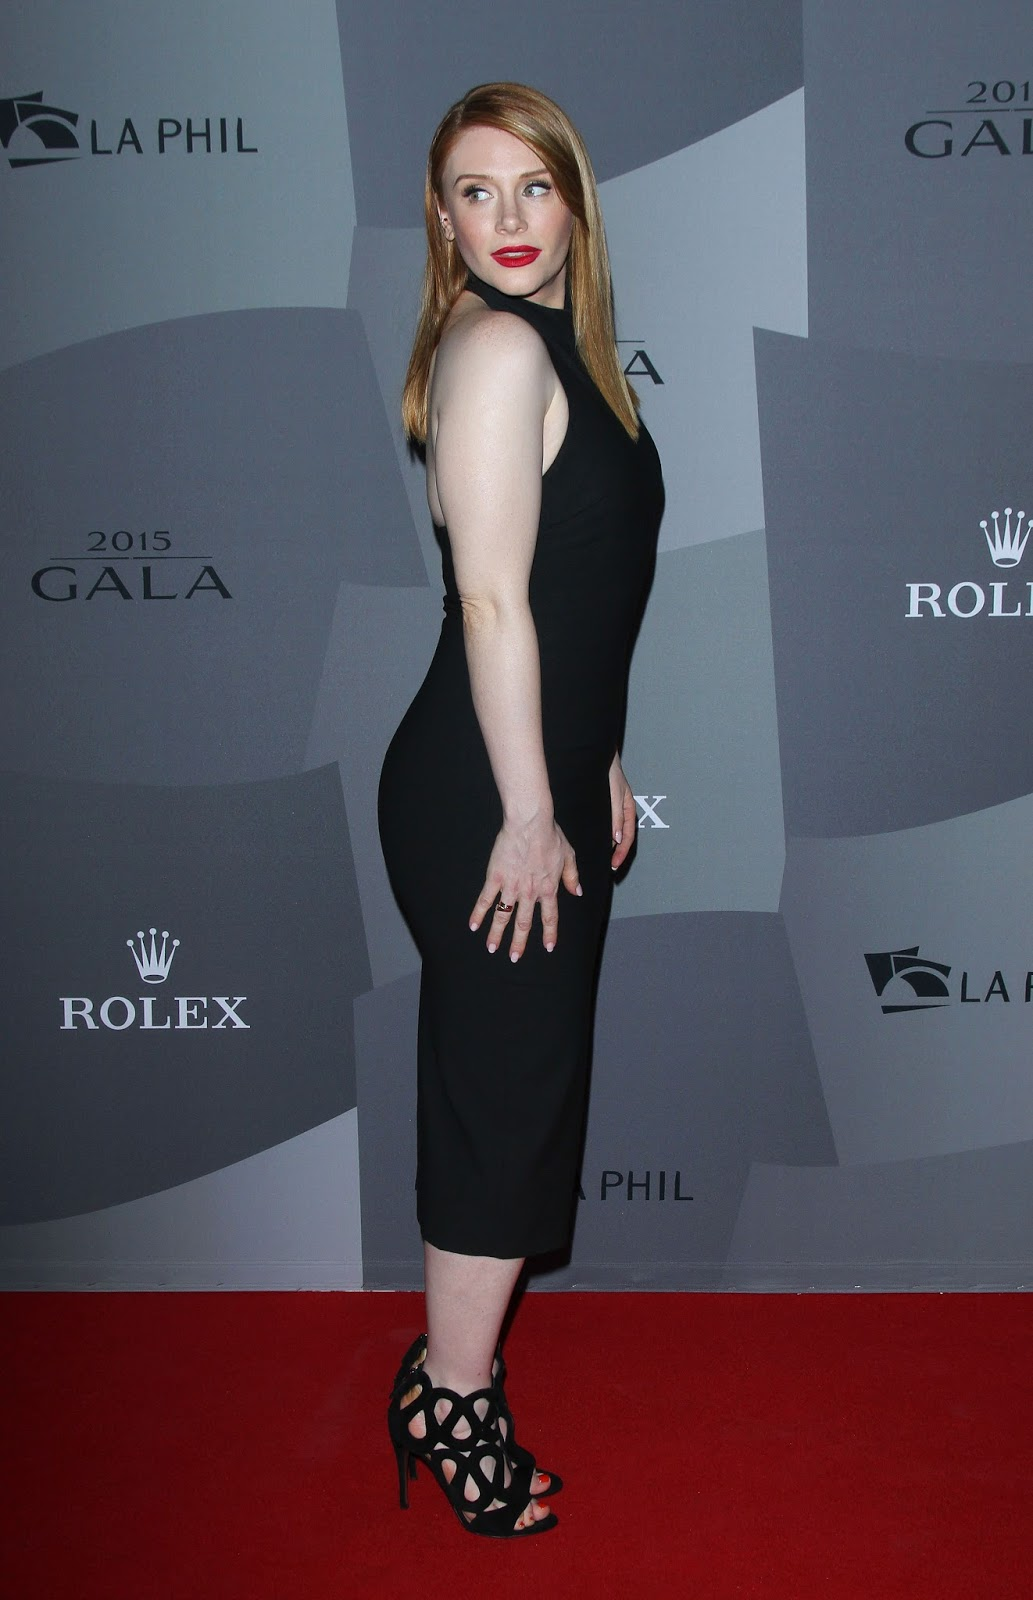 Pete's Dragon actress Full HQ Photos & Wallpapers Bryce Dallas Howard At La Philharmonic 2015/2016 Season Opening